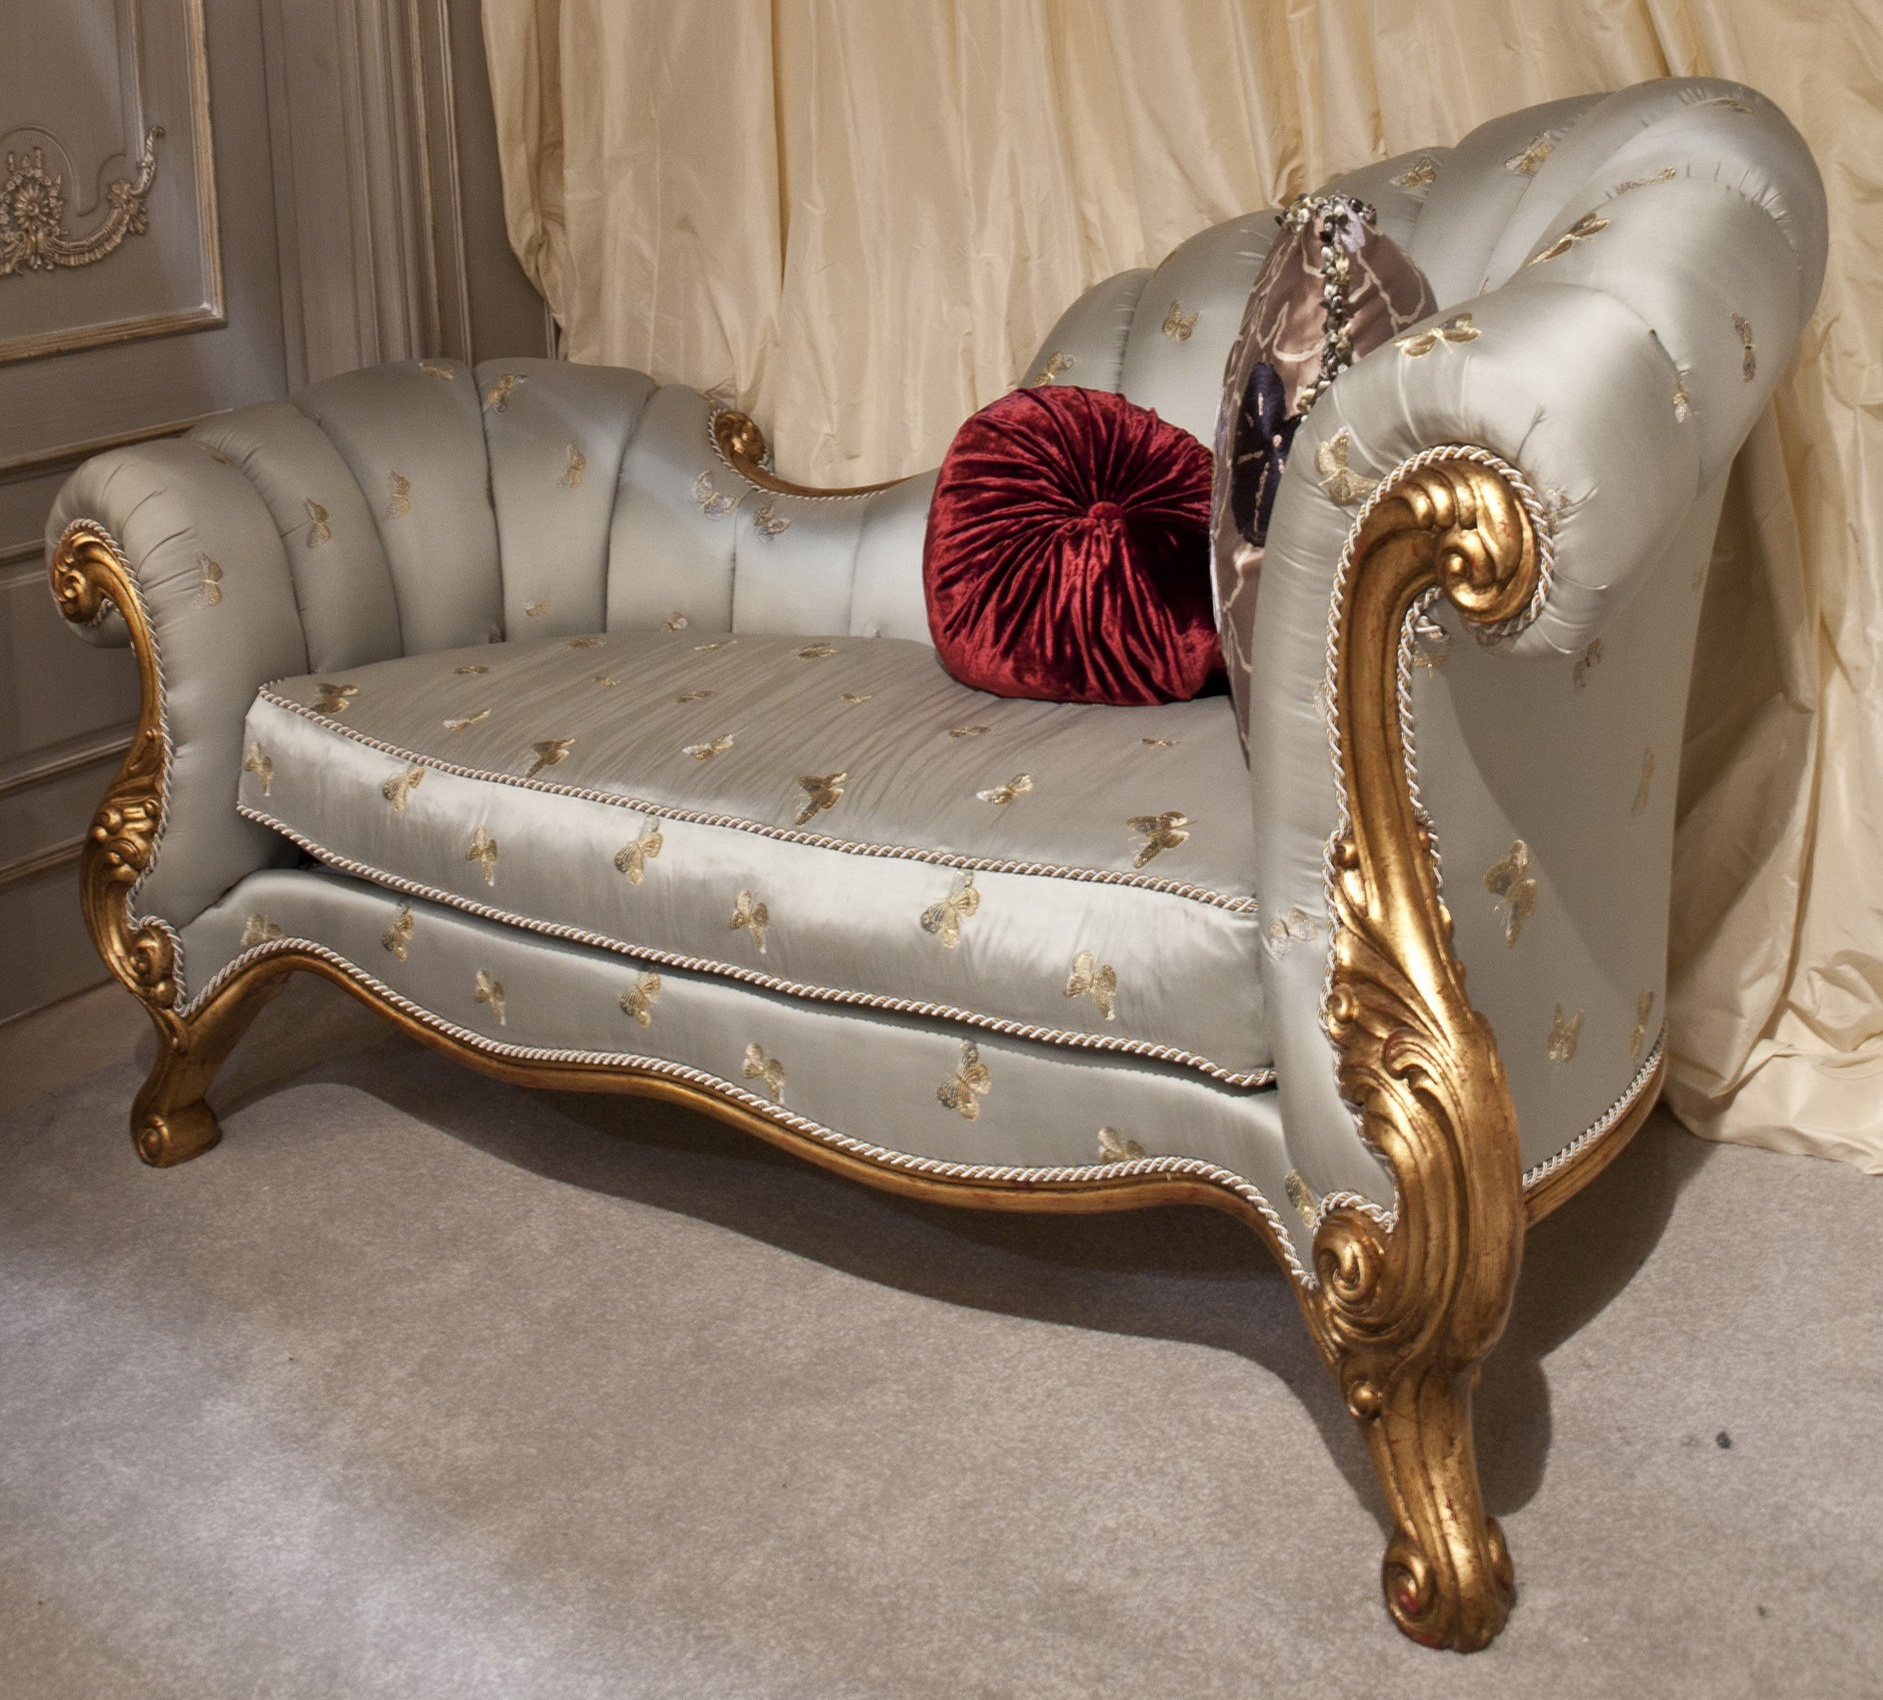 Indian Wedding Gold Curved 2 Seater